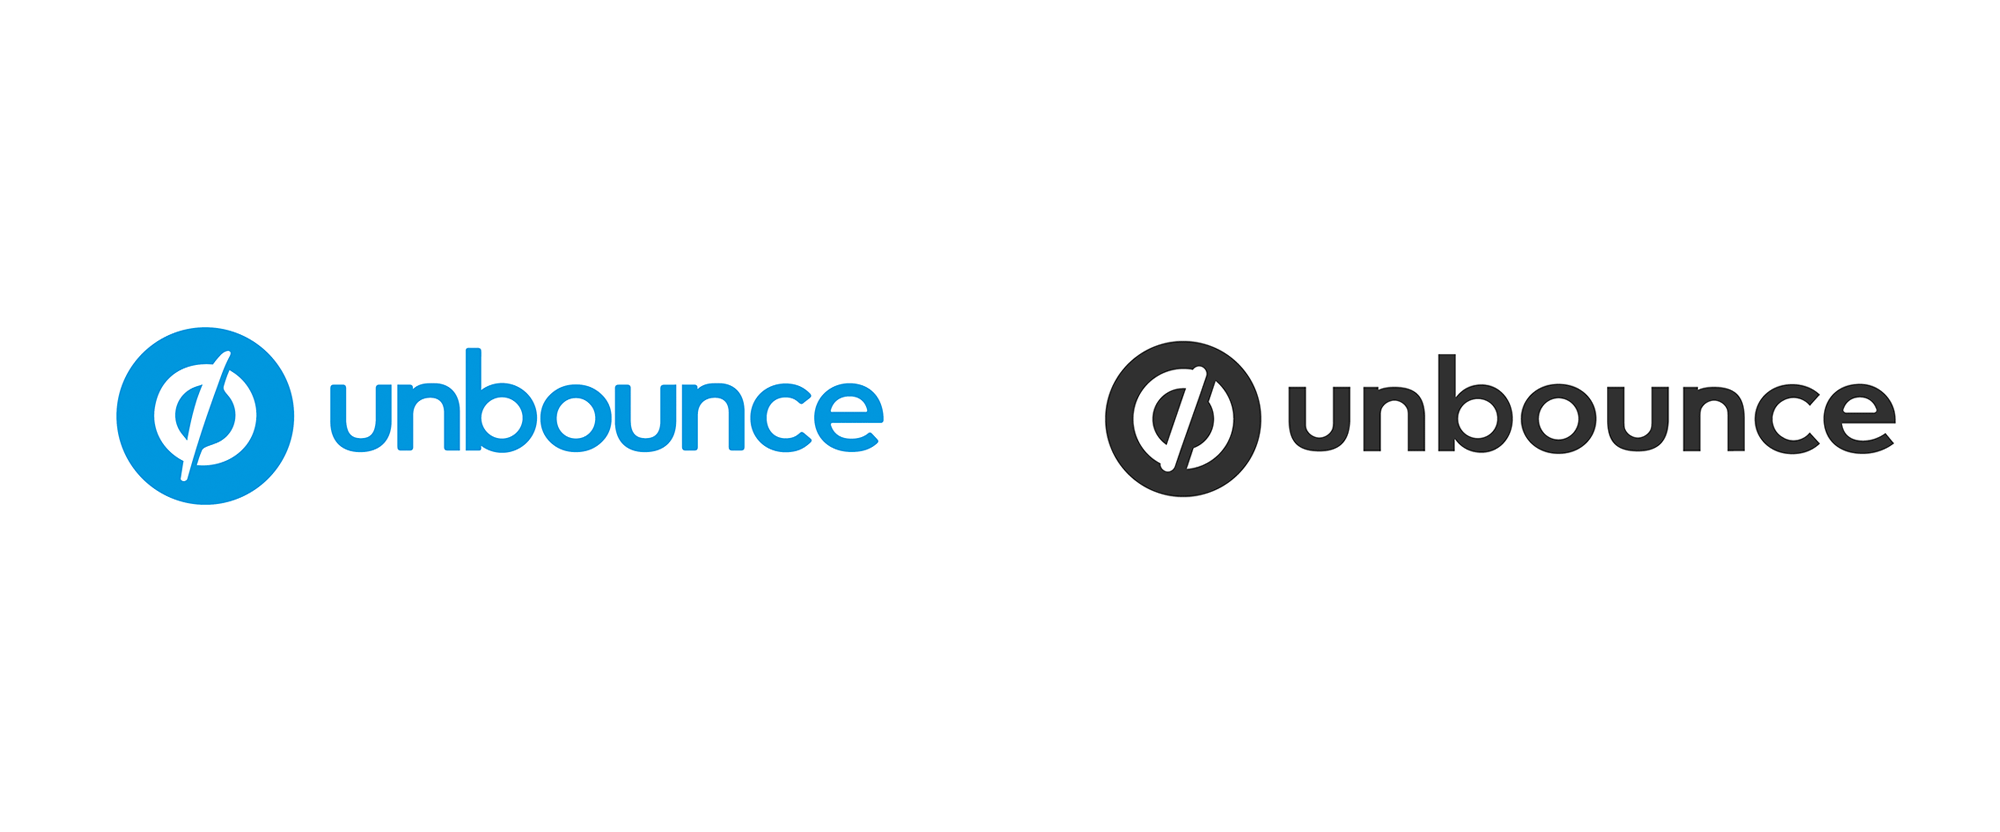 New Logo and Identity for Unbounce done In-house